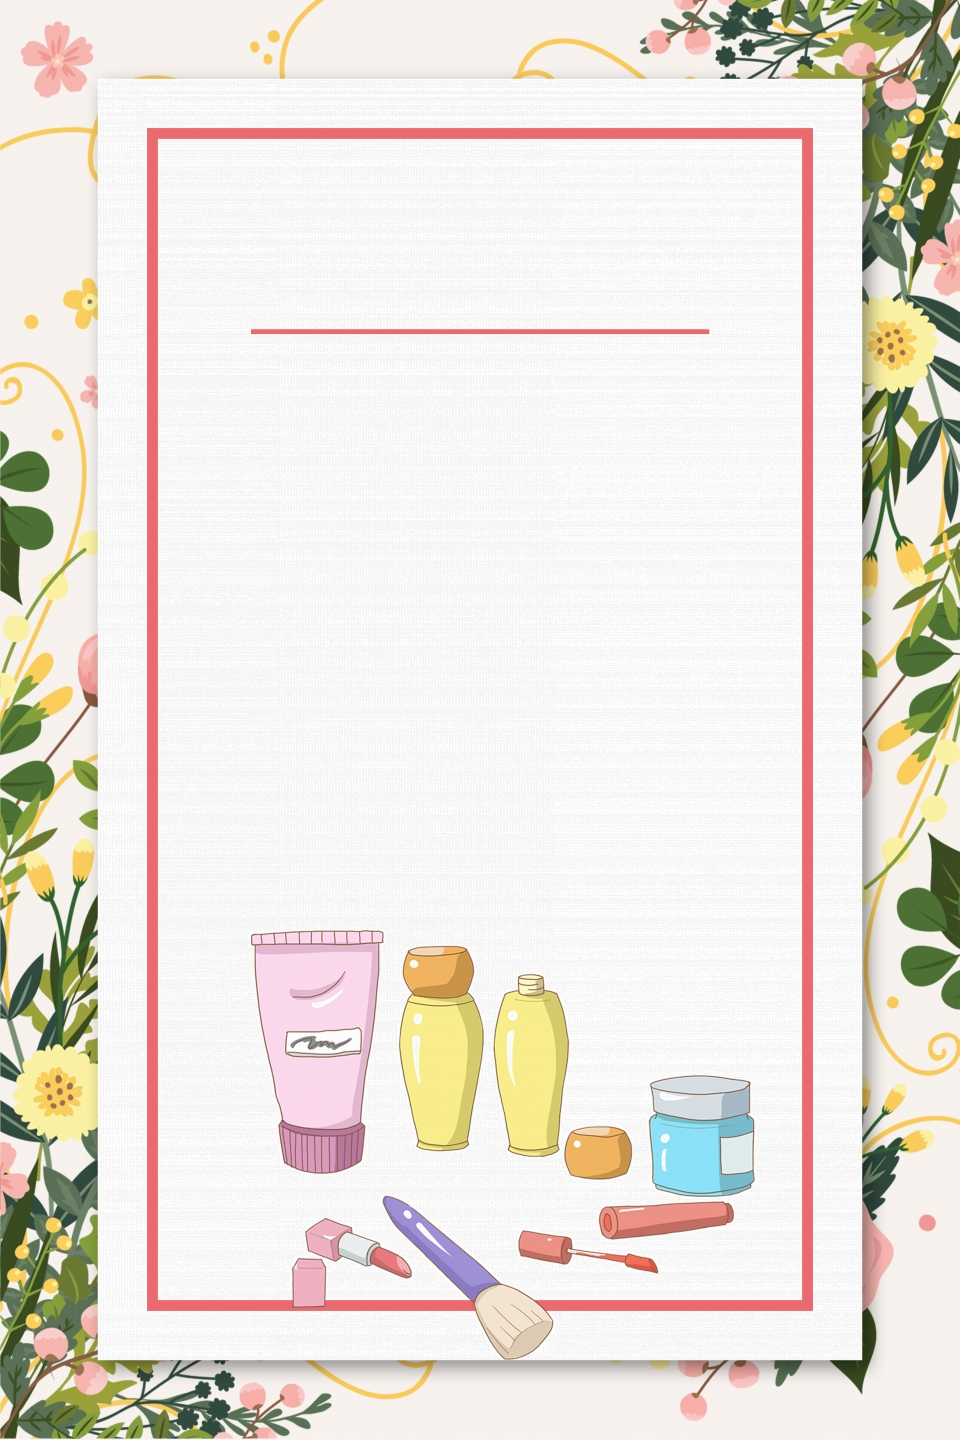 Beauty Skin Care Cosmetics Poster Background Material Beauty Skin Care Cosmetics Facial Cleanser Background Image For Free Download